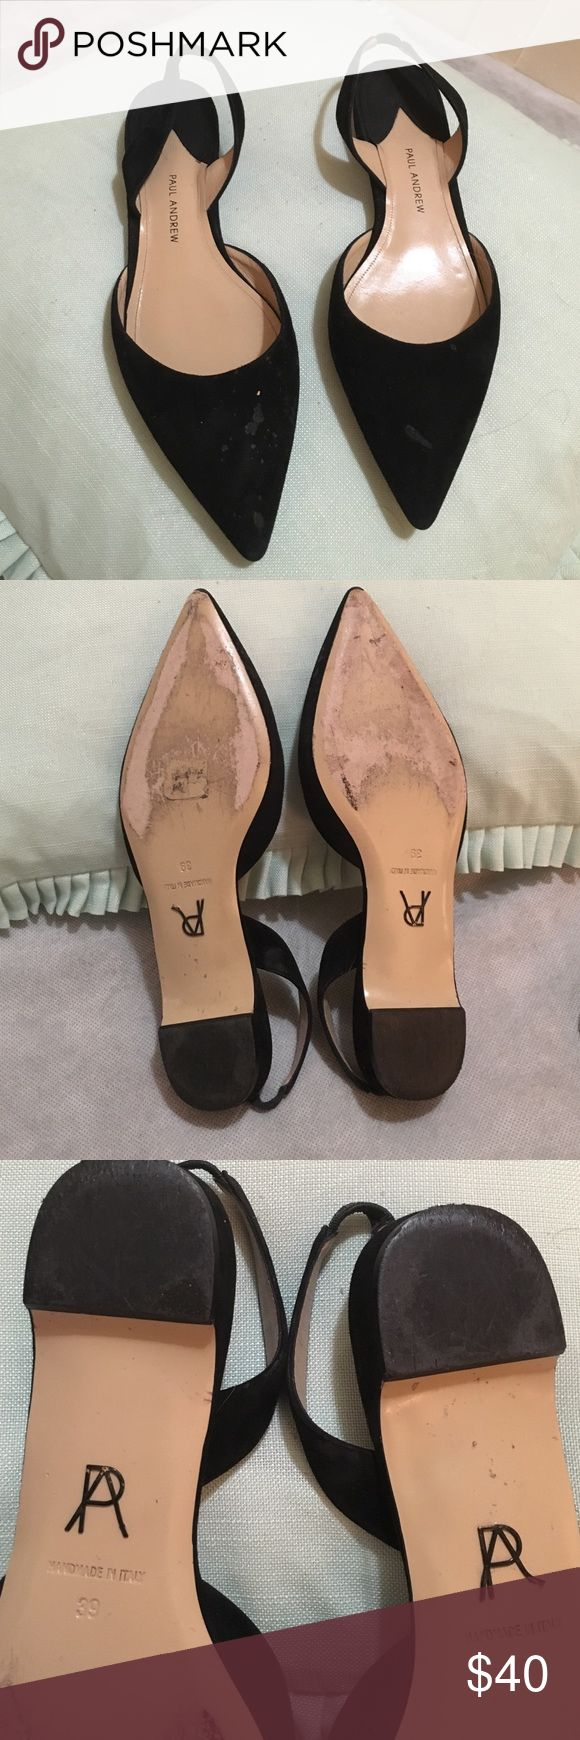 Paul andrew pointy toe flats Paul Andrew flats. Used condition but still a great shoe! Slingback flats with a pointed toe paul andrew Shoes Flats & Loafers